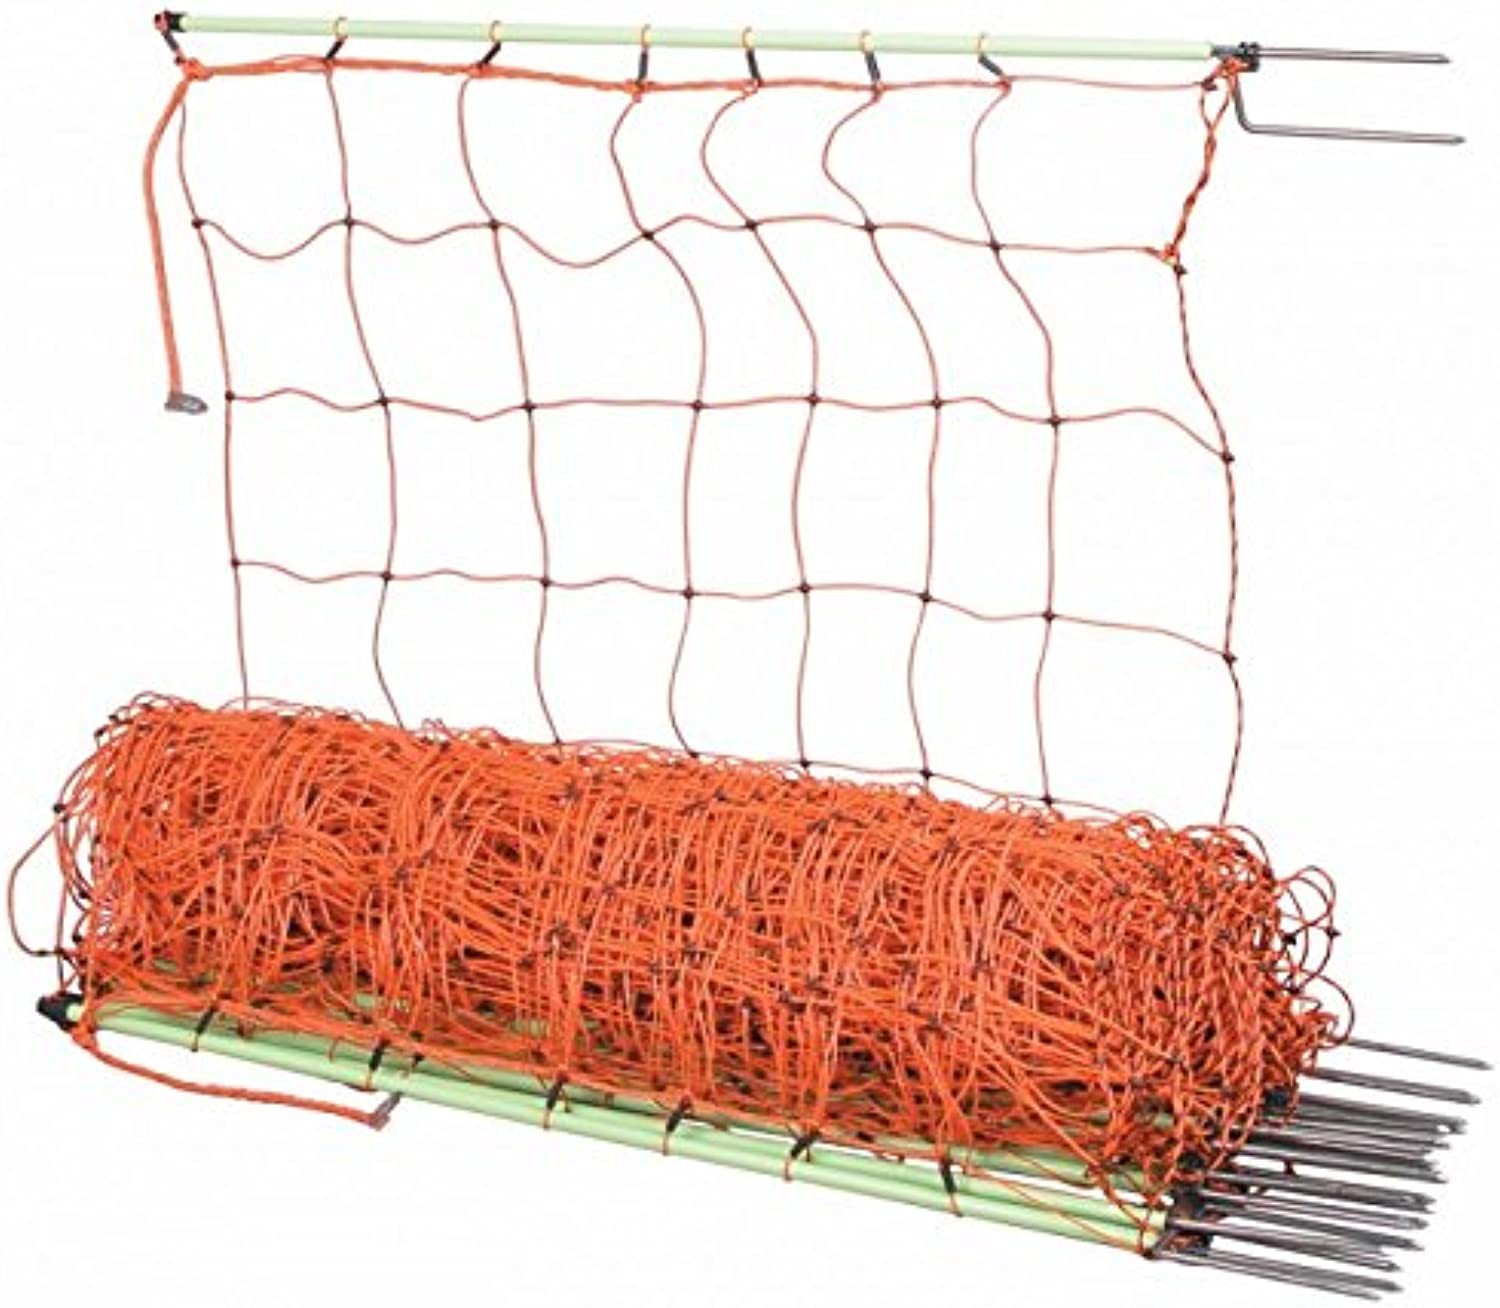 Patura Electric Fence Netting for Sheep, 50 x 1.06 m